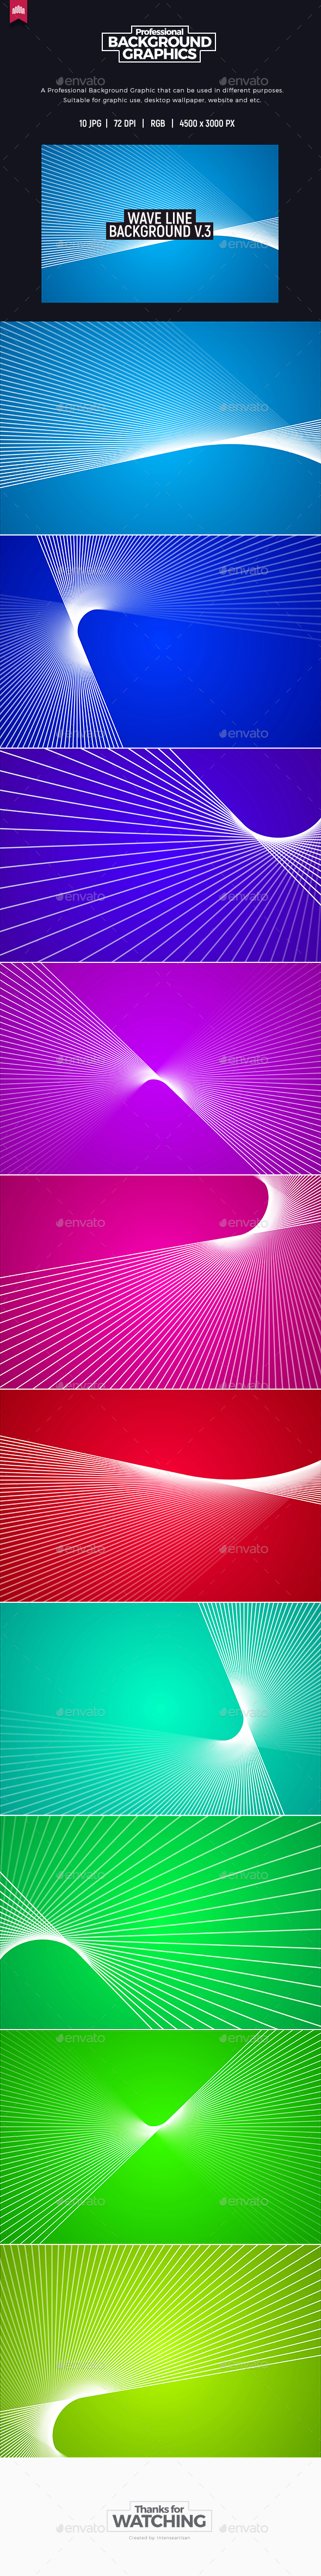 Wave Line Background V.3 - Abstract Backgrounds